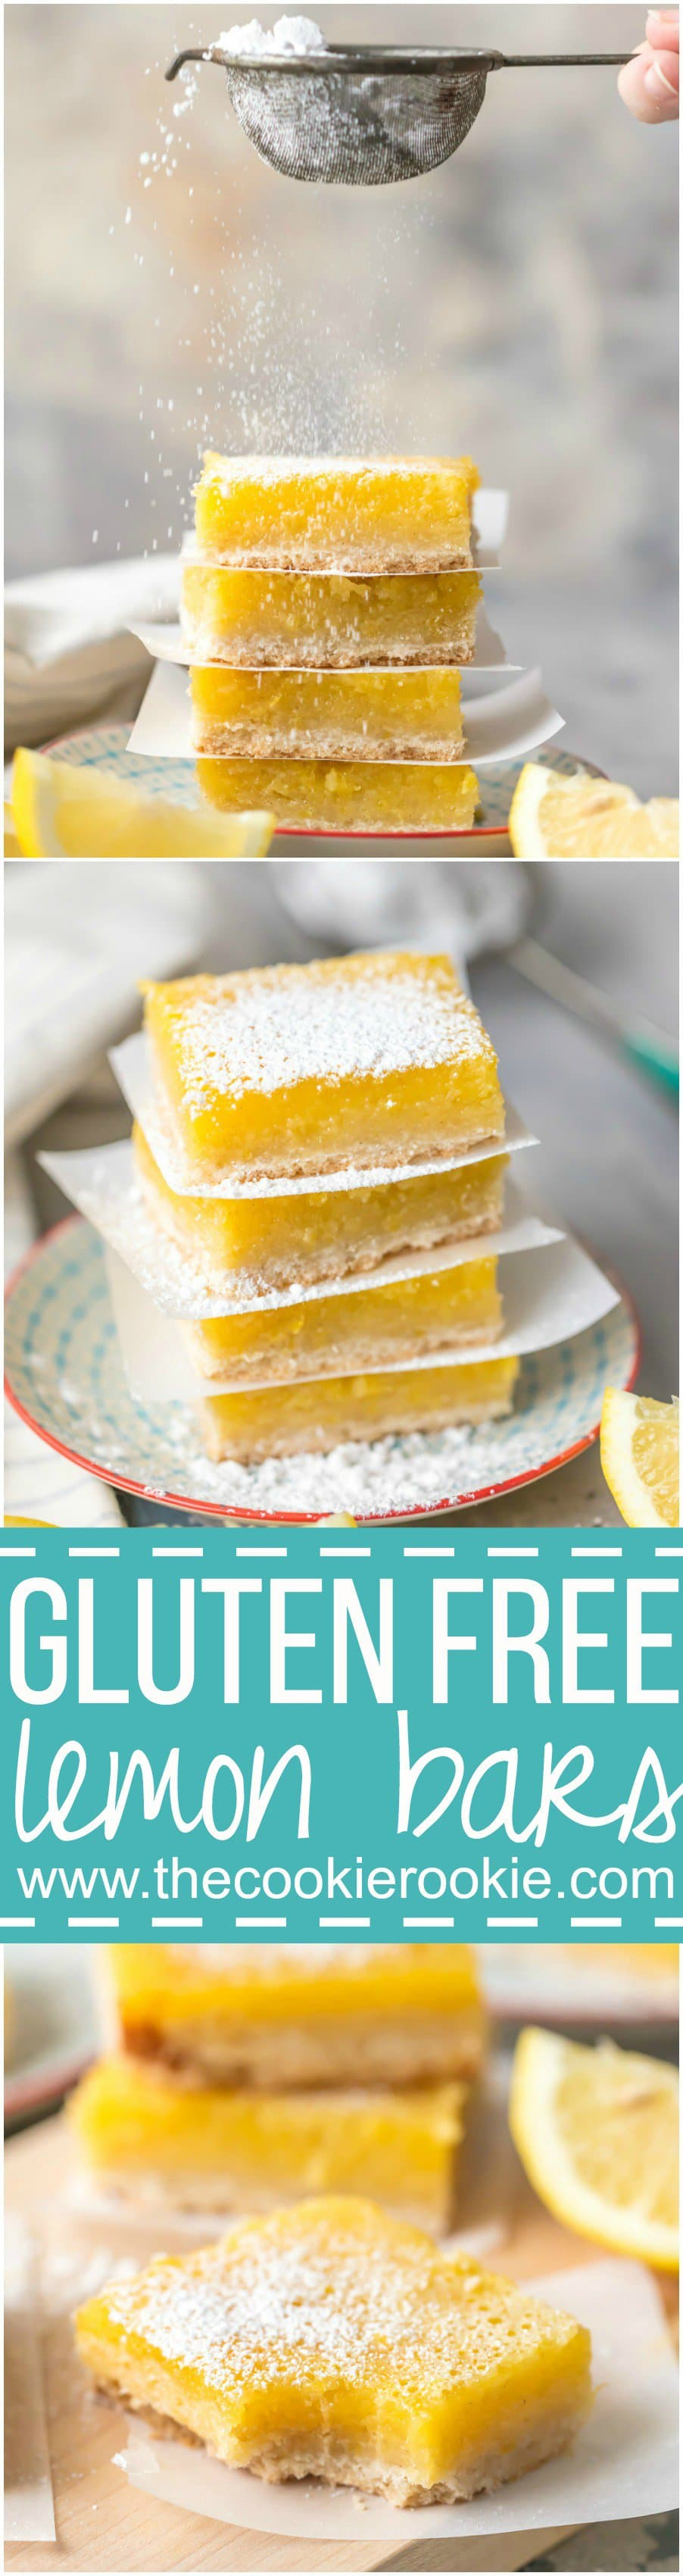 These GLUTEN FREE LEMON BARS are the easiest and best lemon bar recipe, and they just so happen to be gluten free! SO DELICIOUS! Thick and creamy lemon squares for the win.